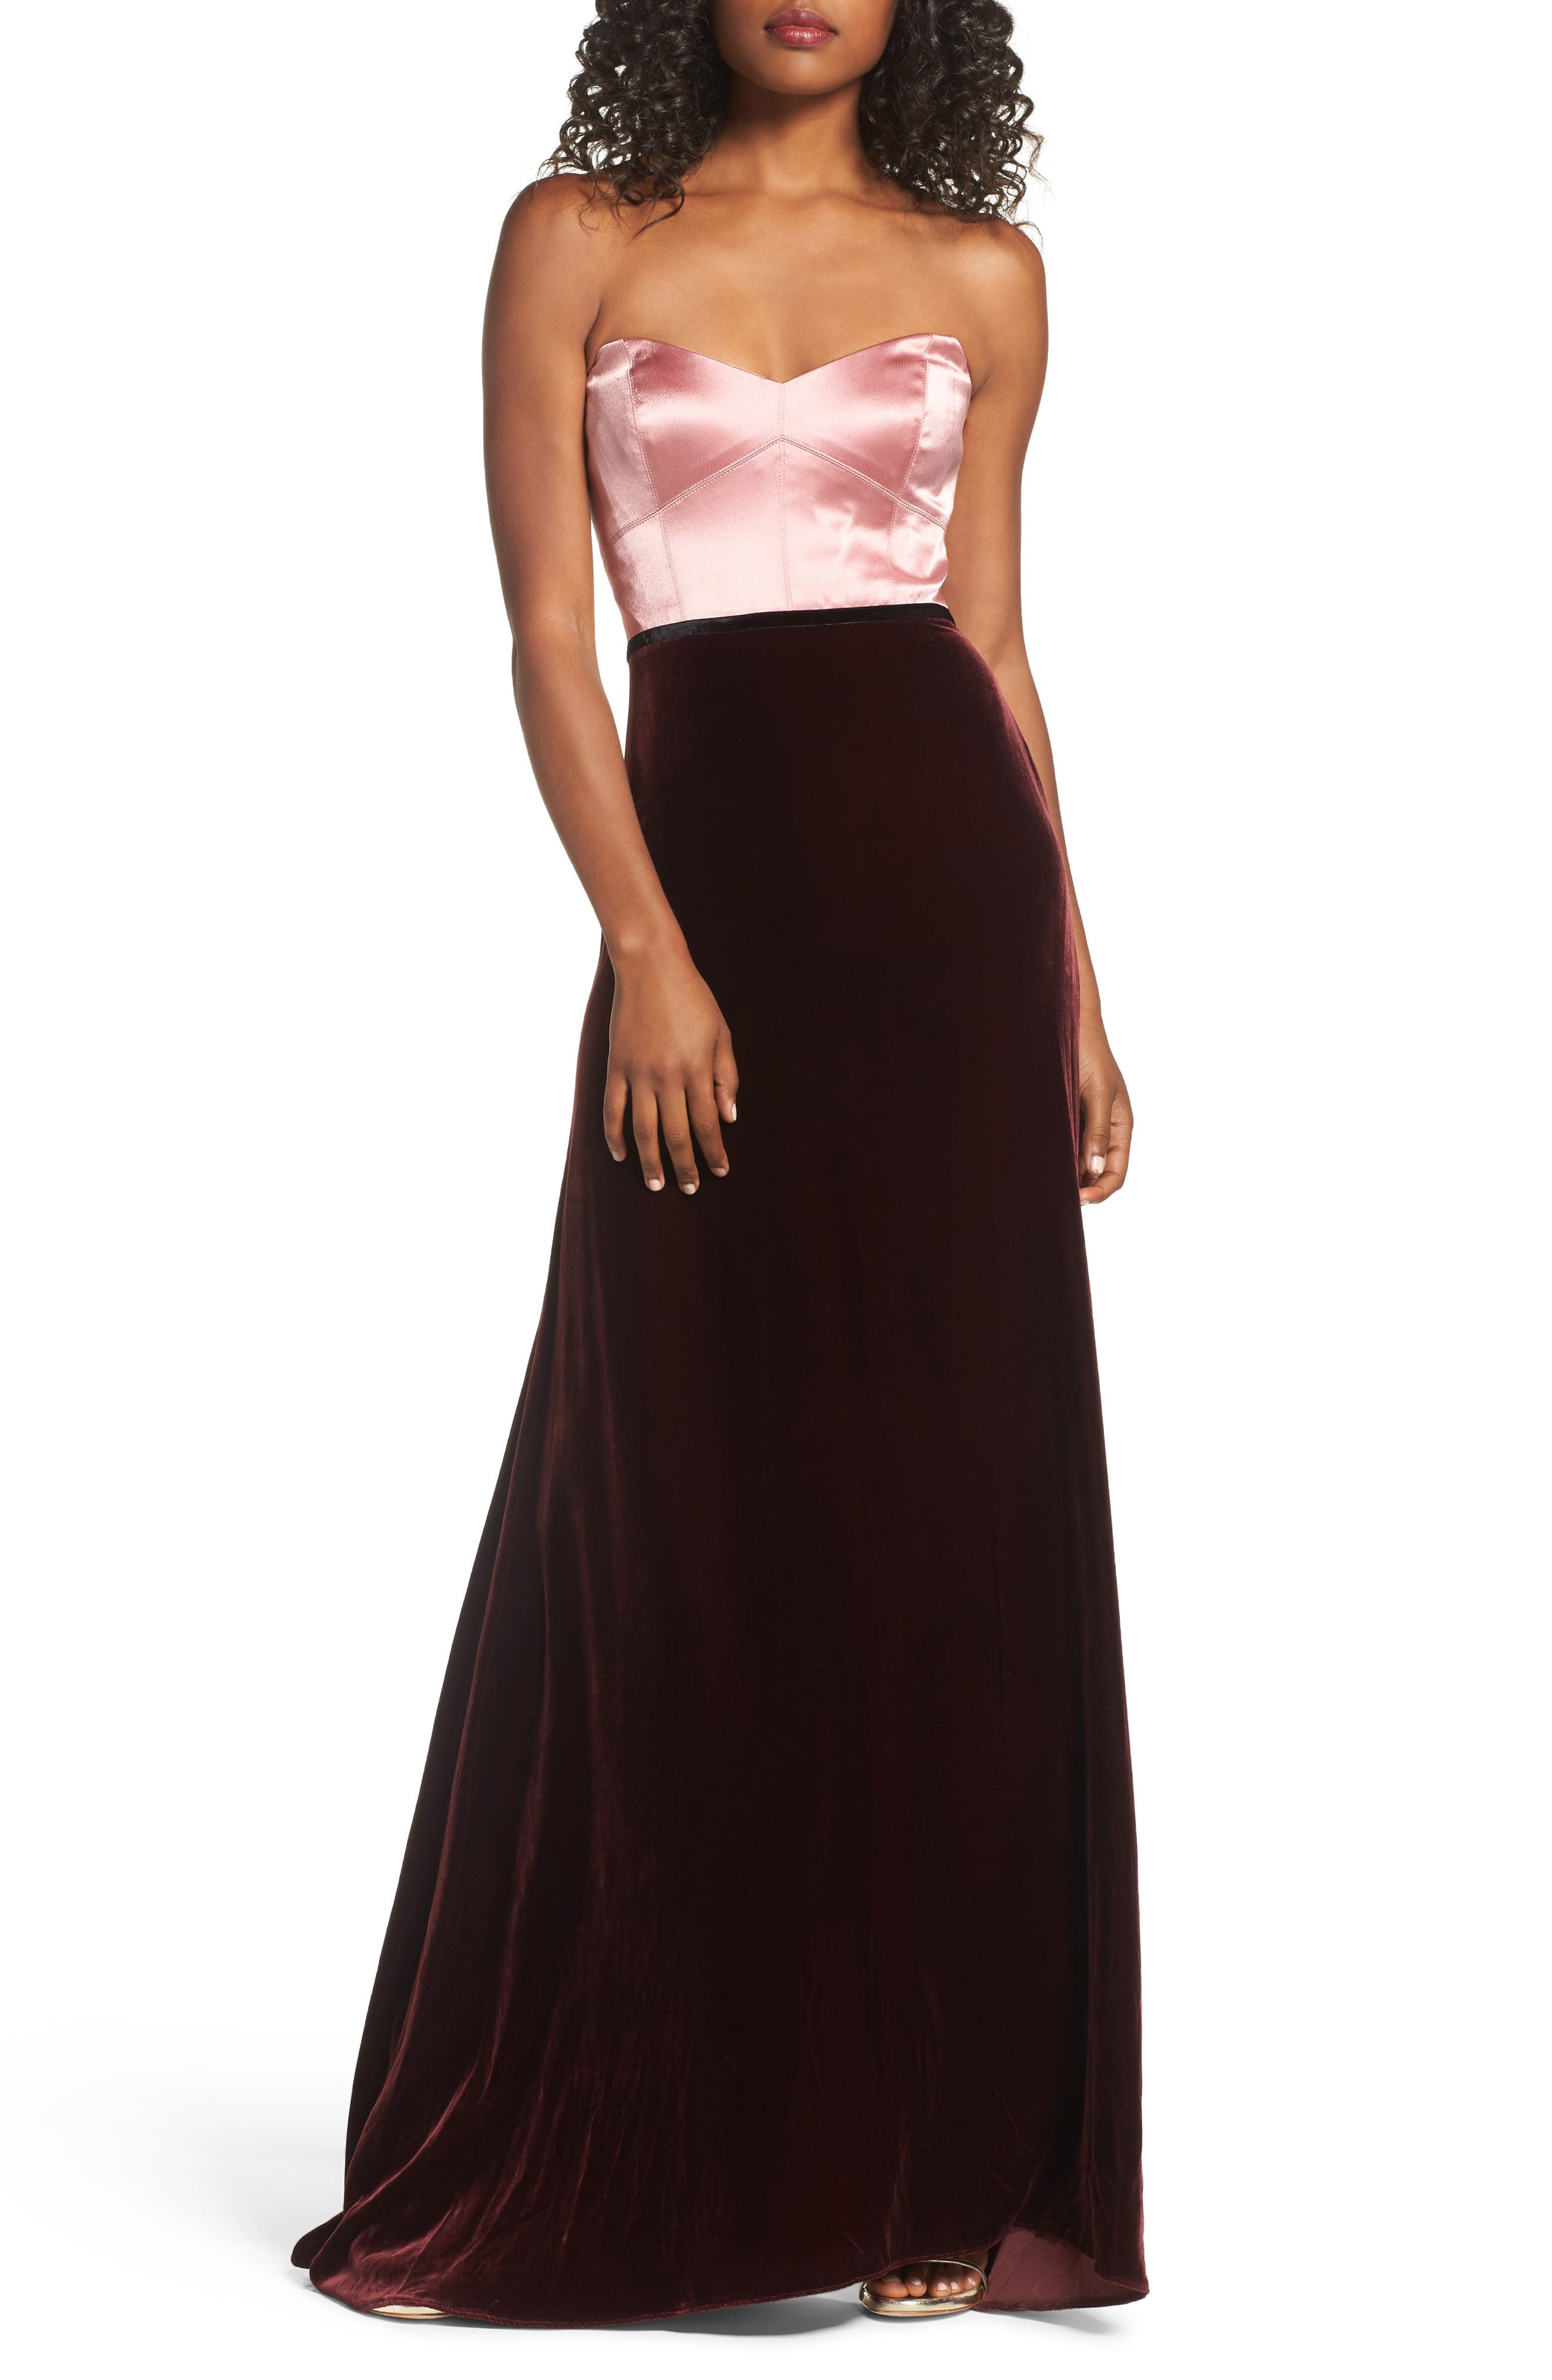 Strapless Satin & Velvet Gown,                         Main,                         color, Prim Rose/ Raisin/ Black